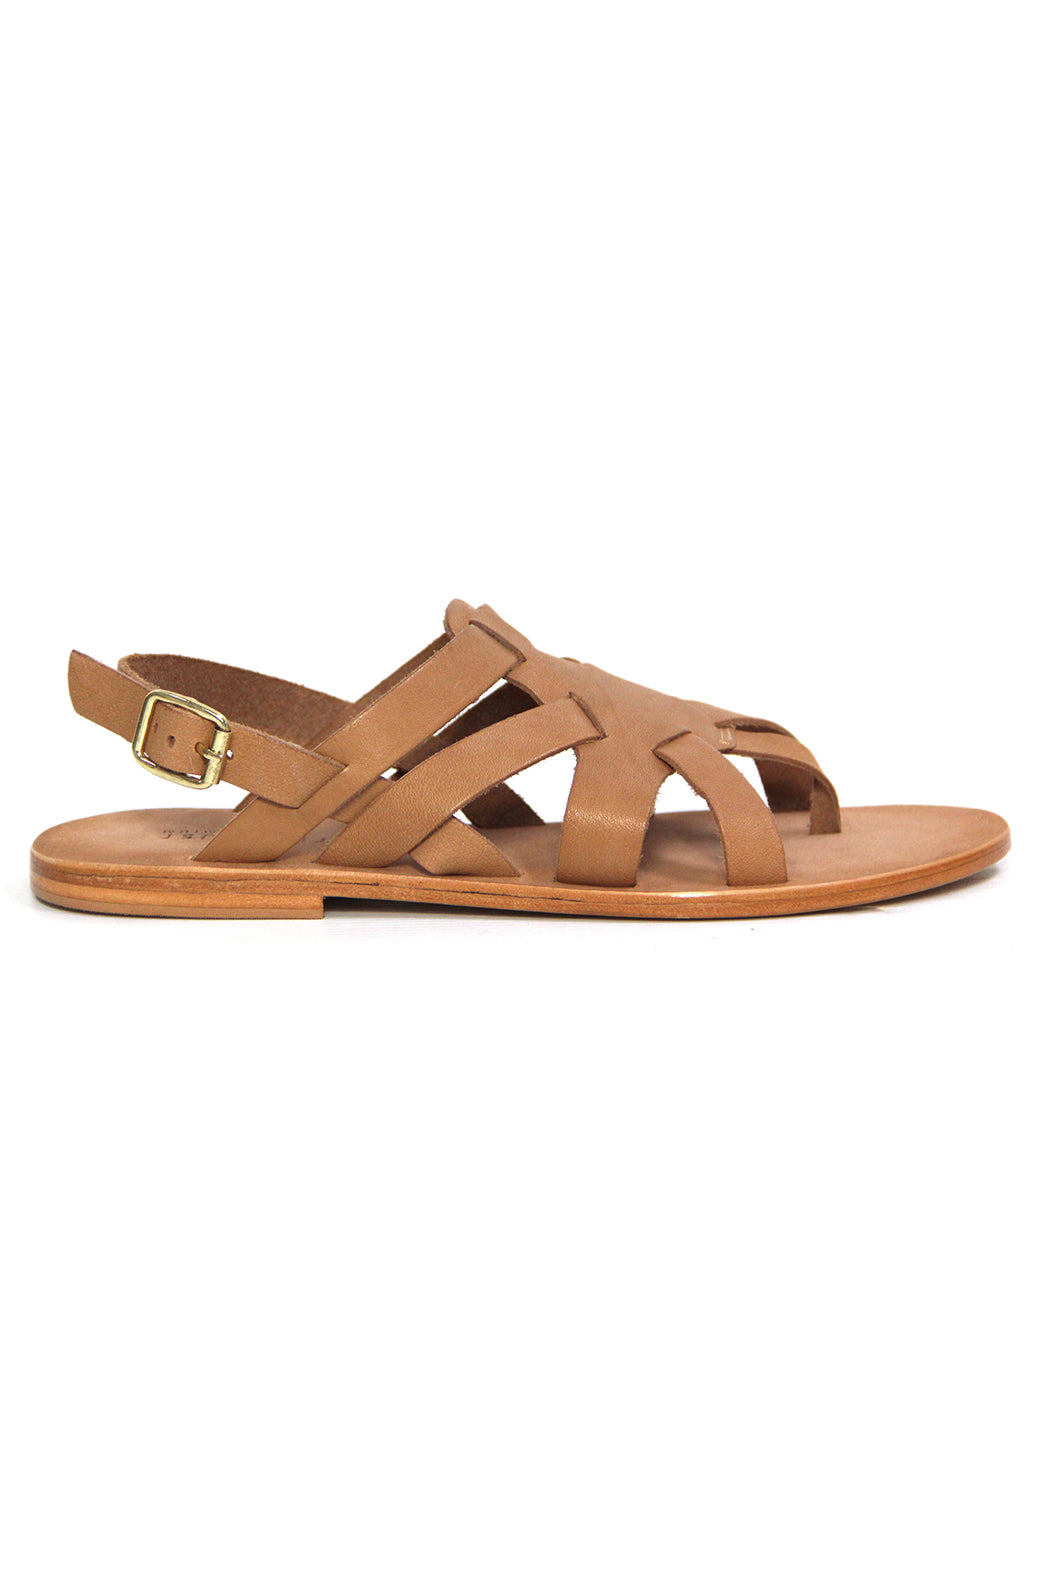 Just Because Tingal Sandals in Tan